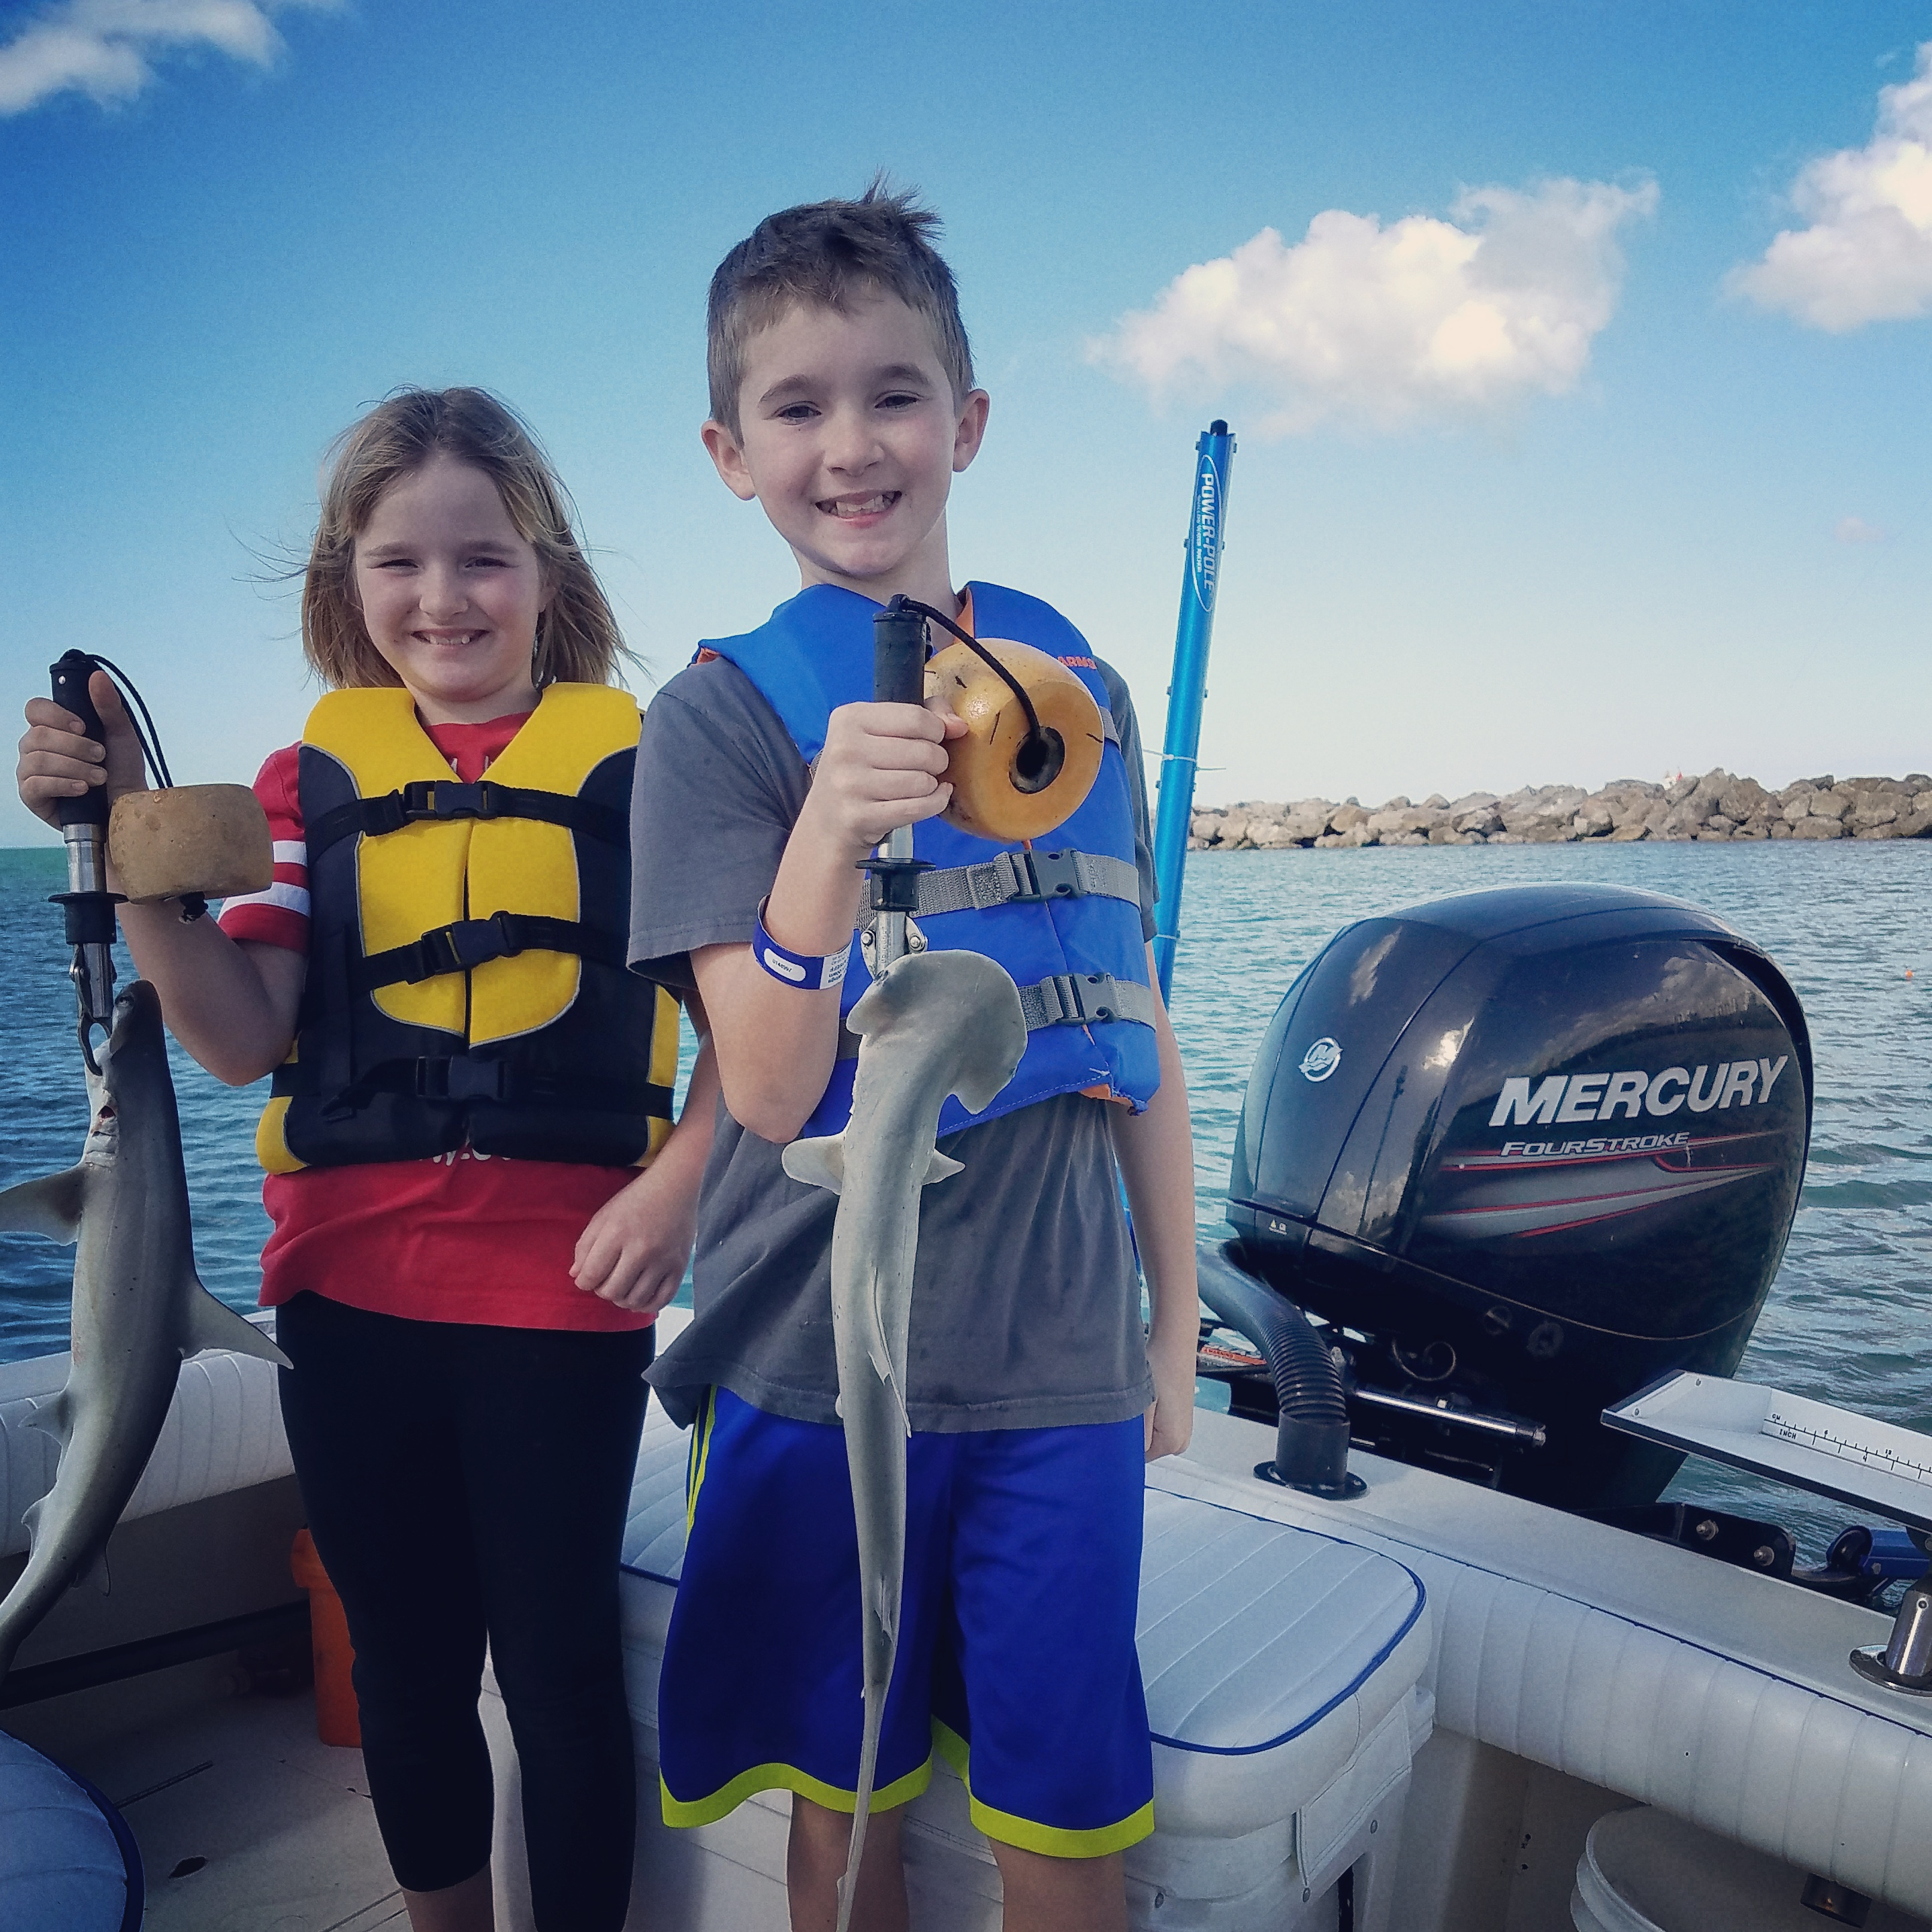 Kids Shark fishing Charters trips off clearwater beach